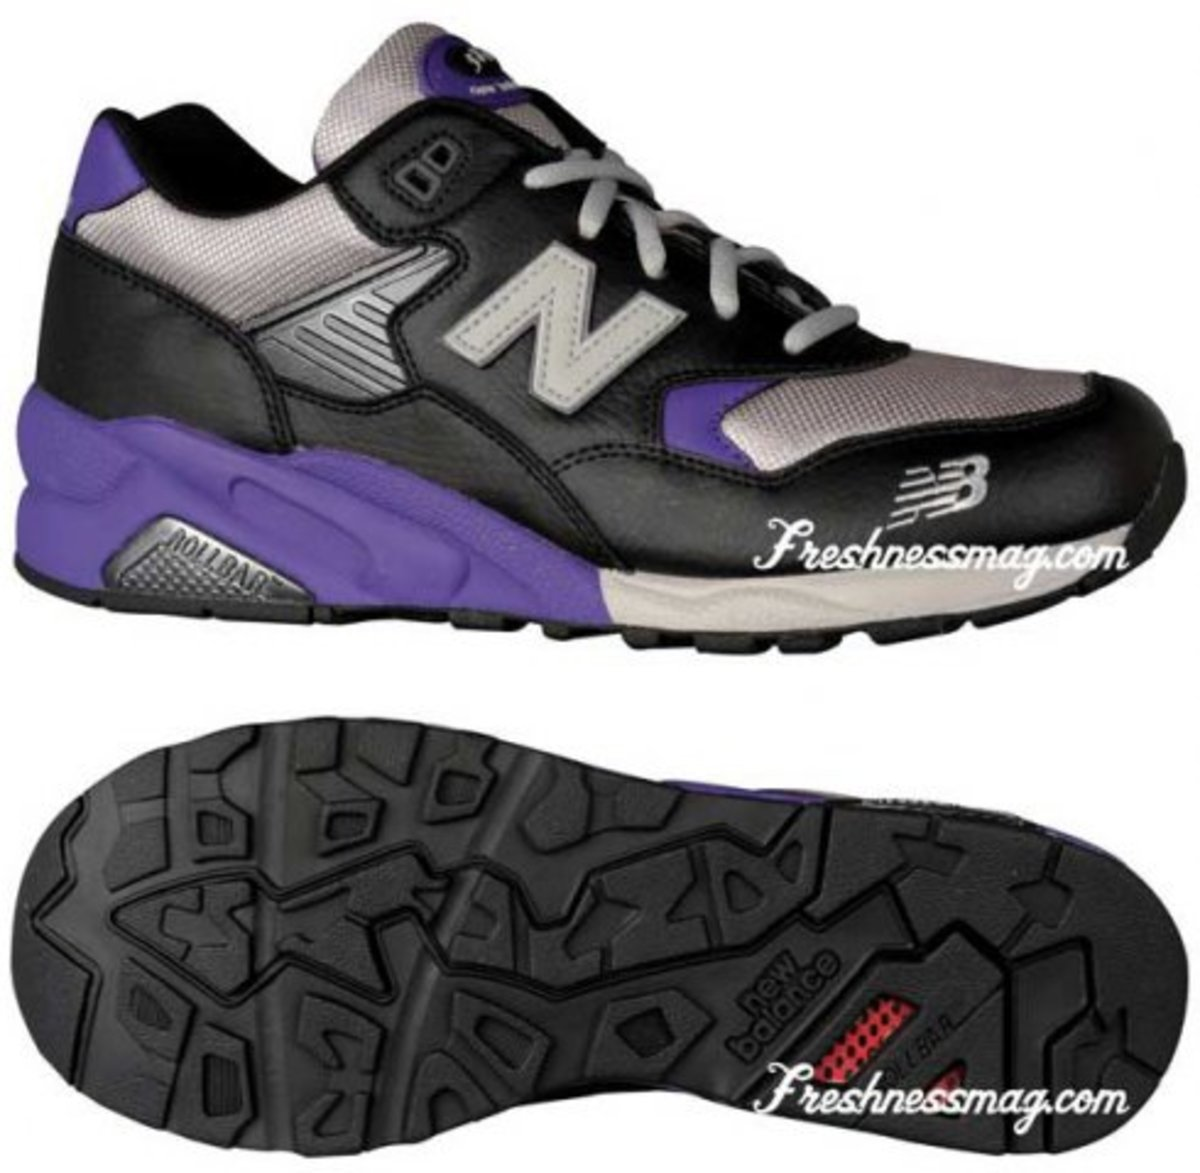 New Balance MT580 - 2009 Collection